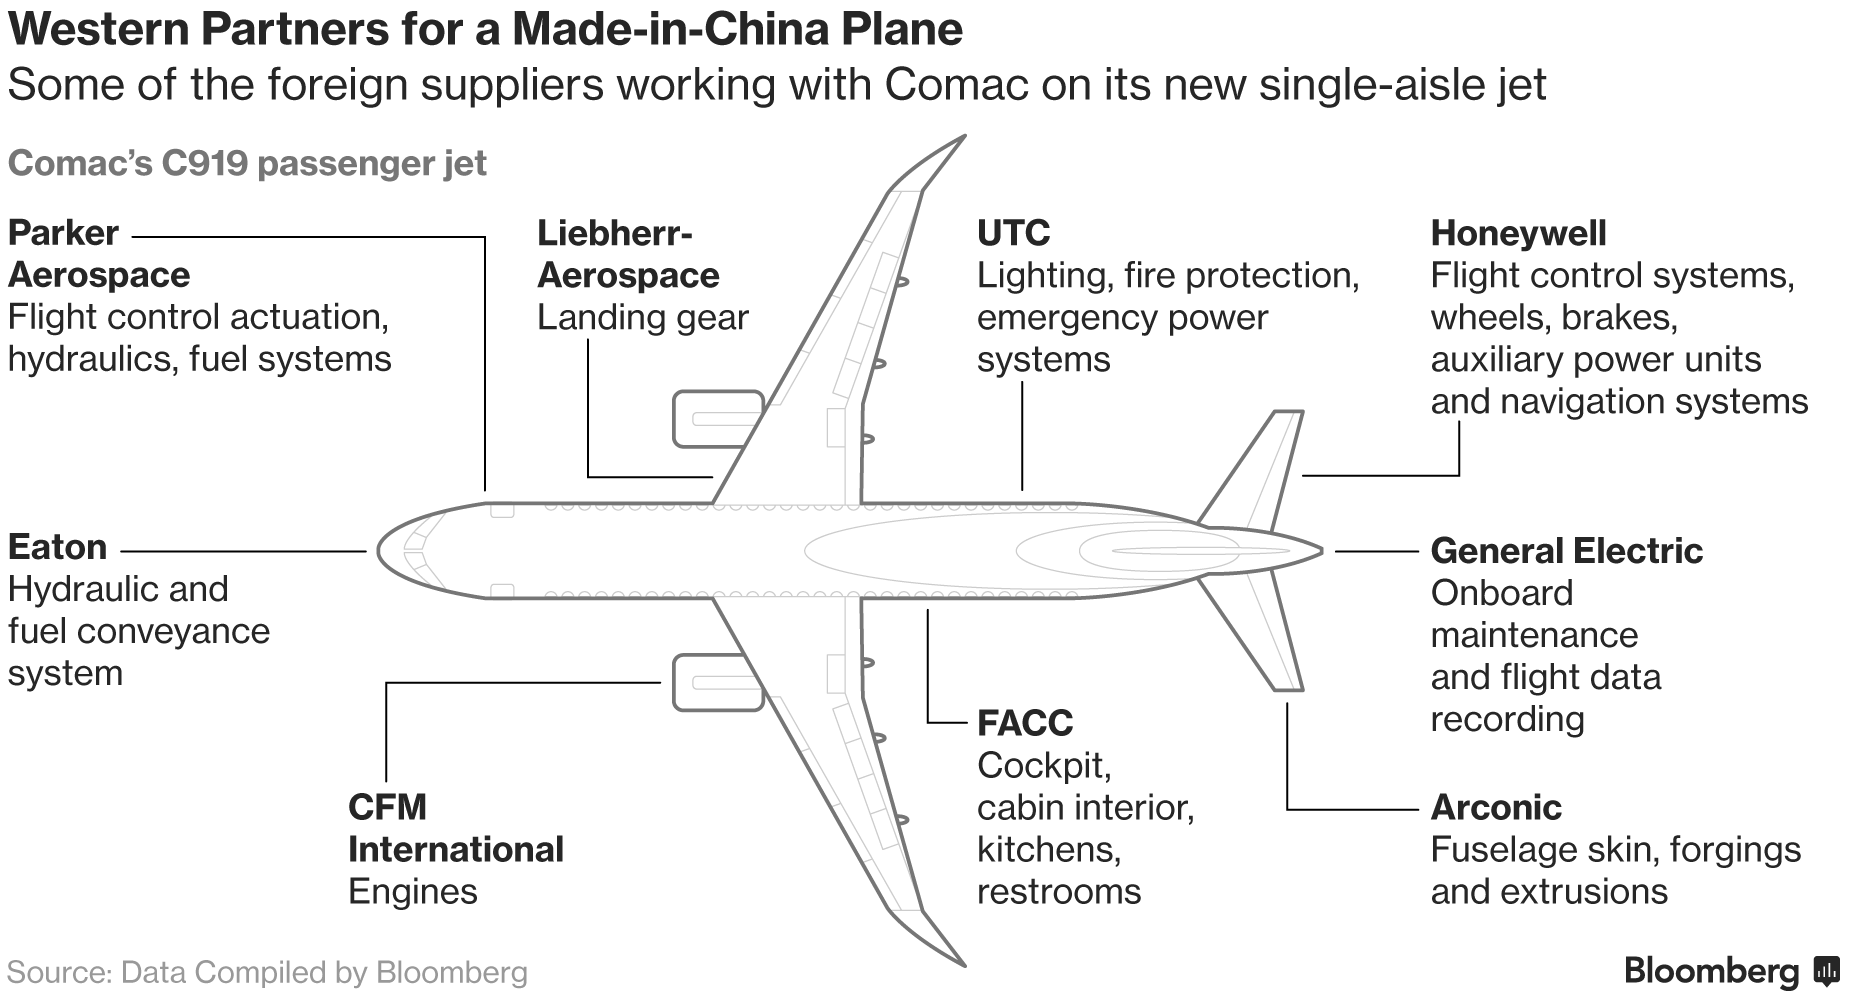 An illustration of some of the foreign suppliers working on the C919. Image via Bloomberg.